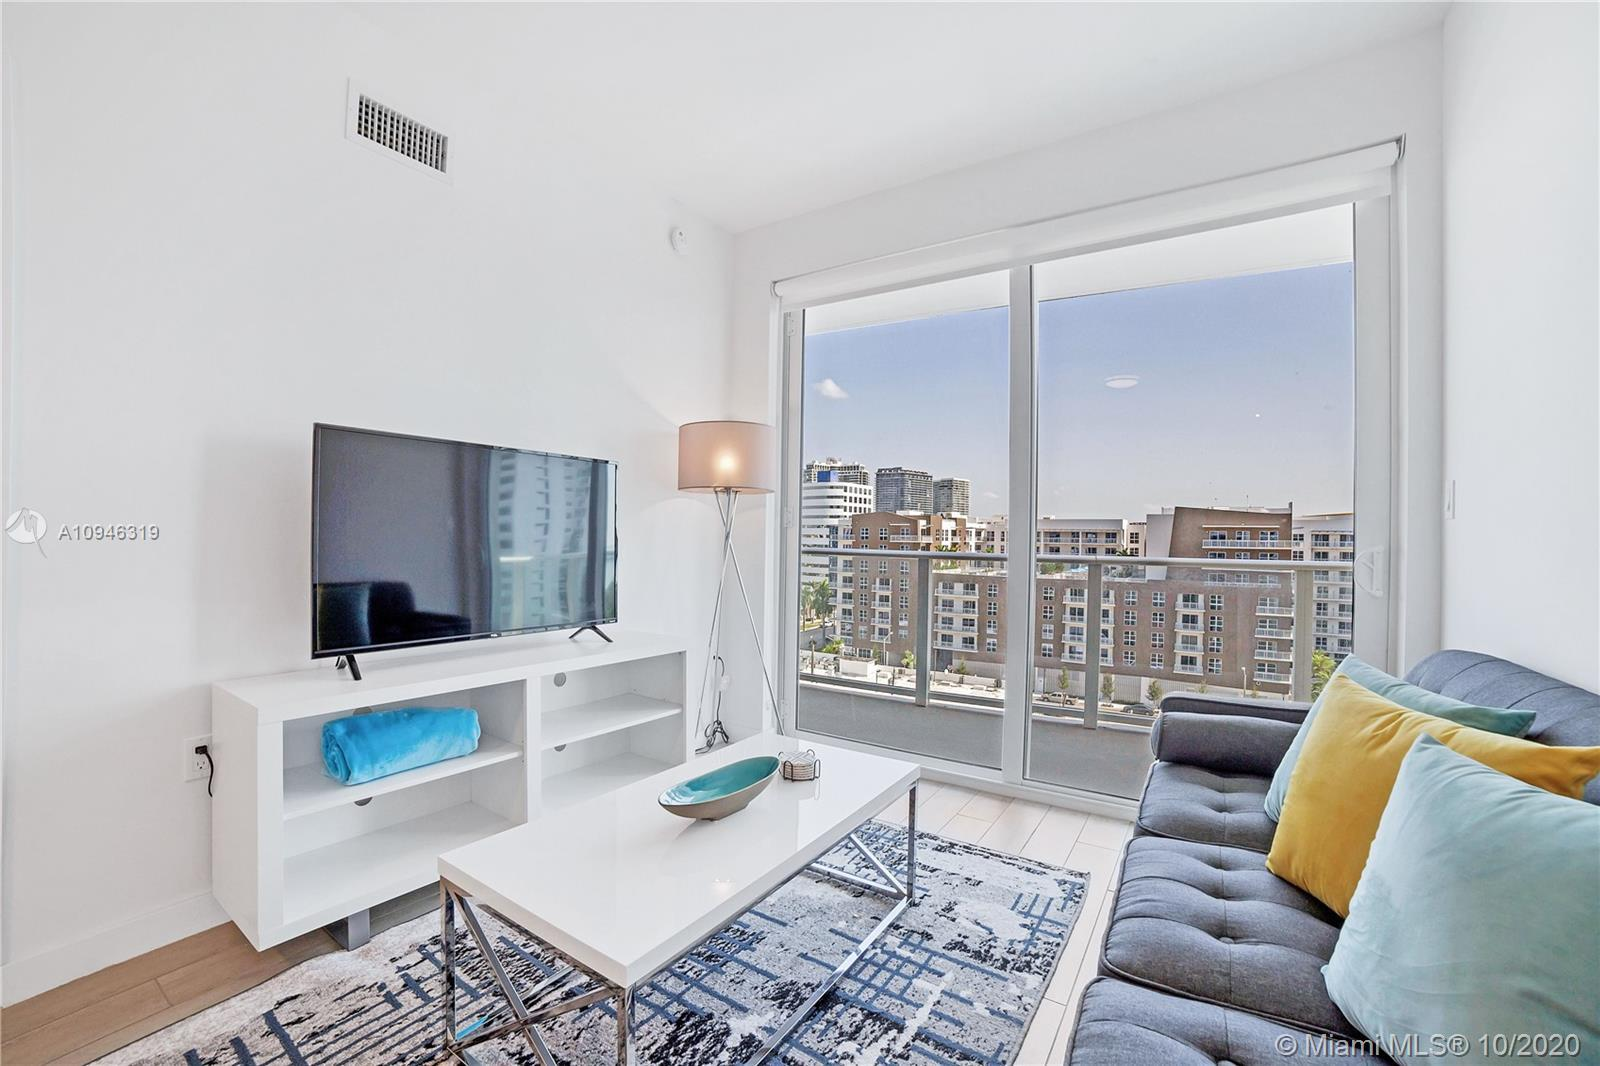 LOVELY 2/2 BATH  UNIT AT 26 EDGEWATER. 26 EDGEWATER WAS BUILT IN 2018.  LOCATION!   LOCATION!  HIGH